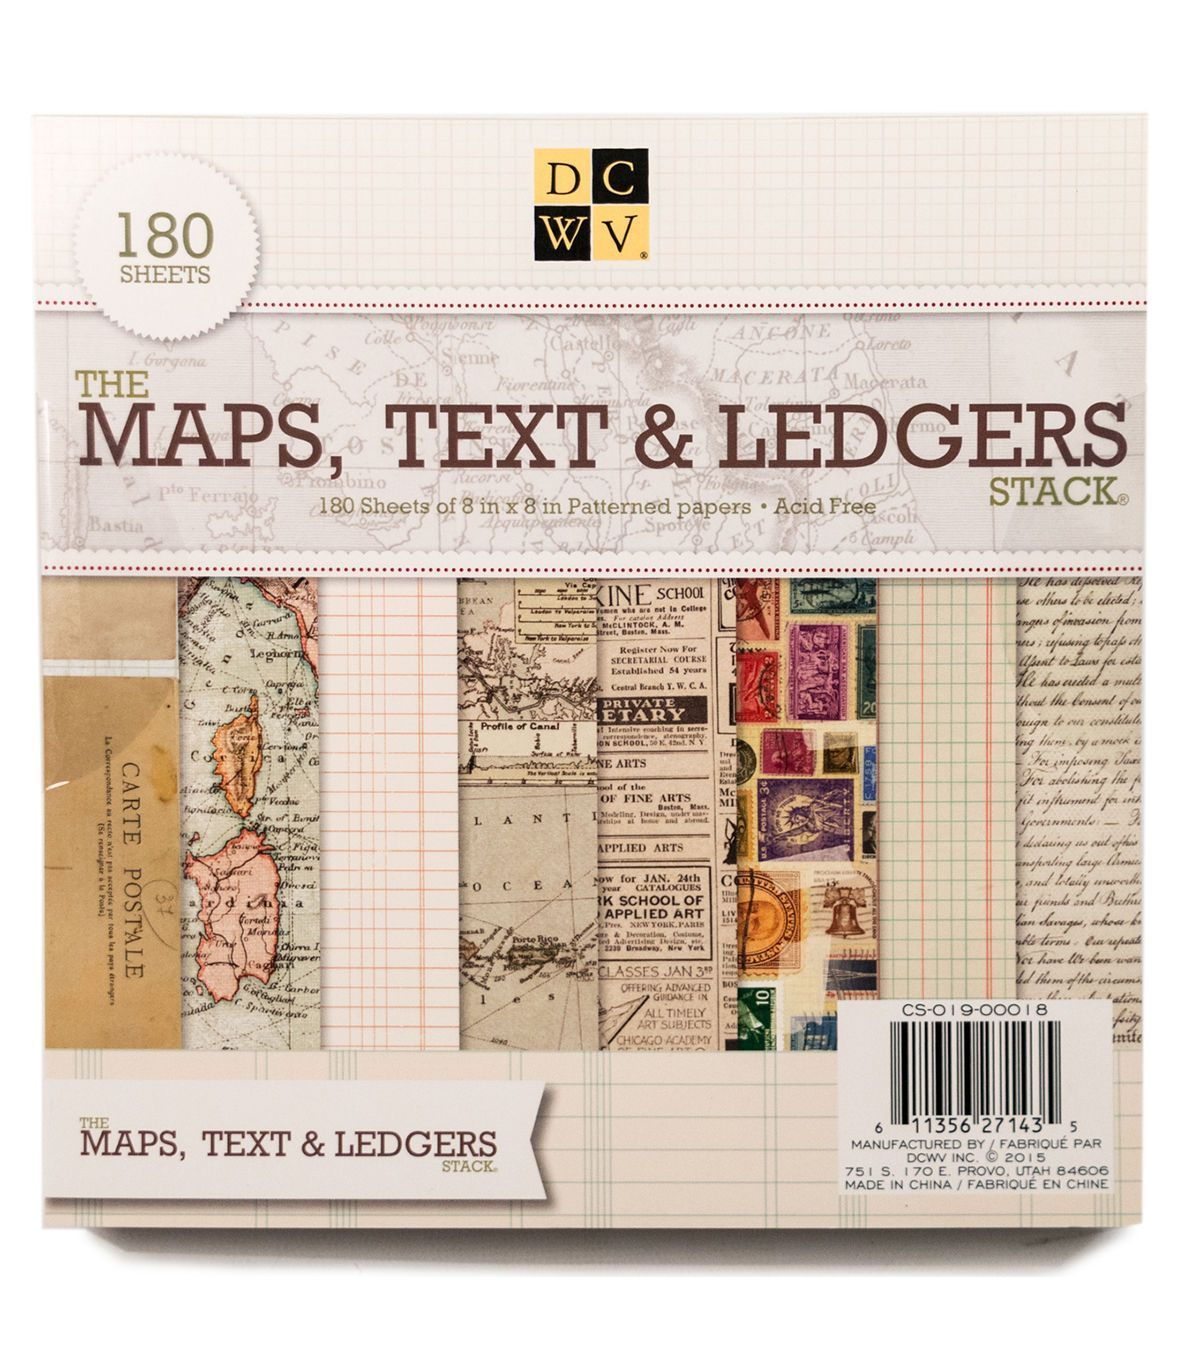 The Maps 180 sheets of patterned paper 8 x 8-inch pad Text /& Ledgers Stack by DCWV